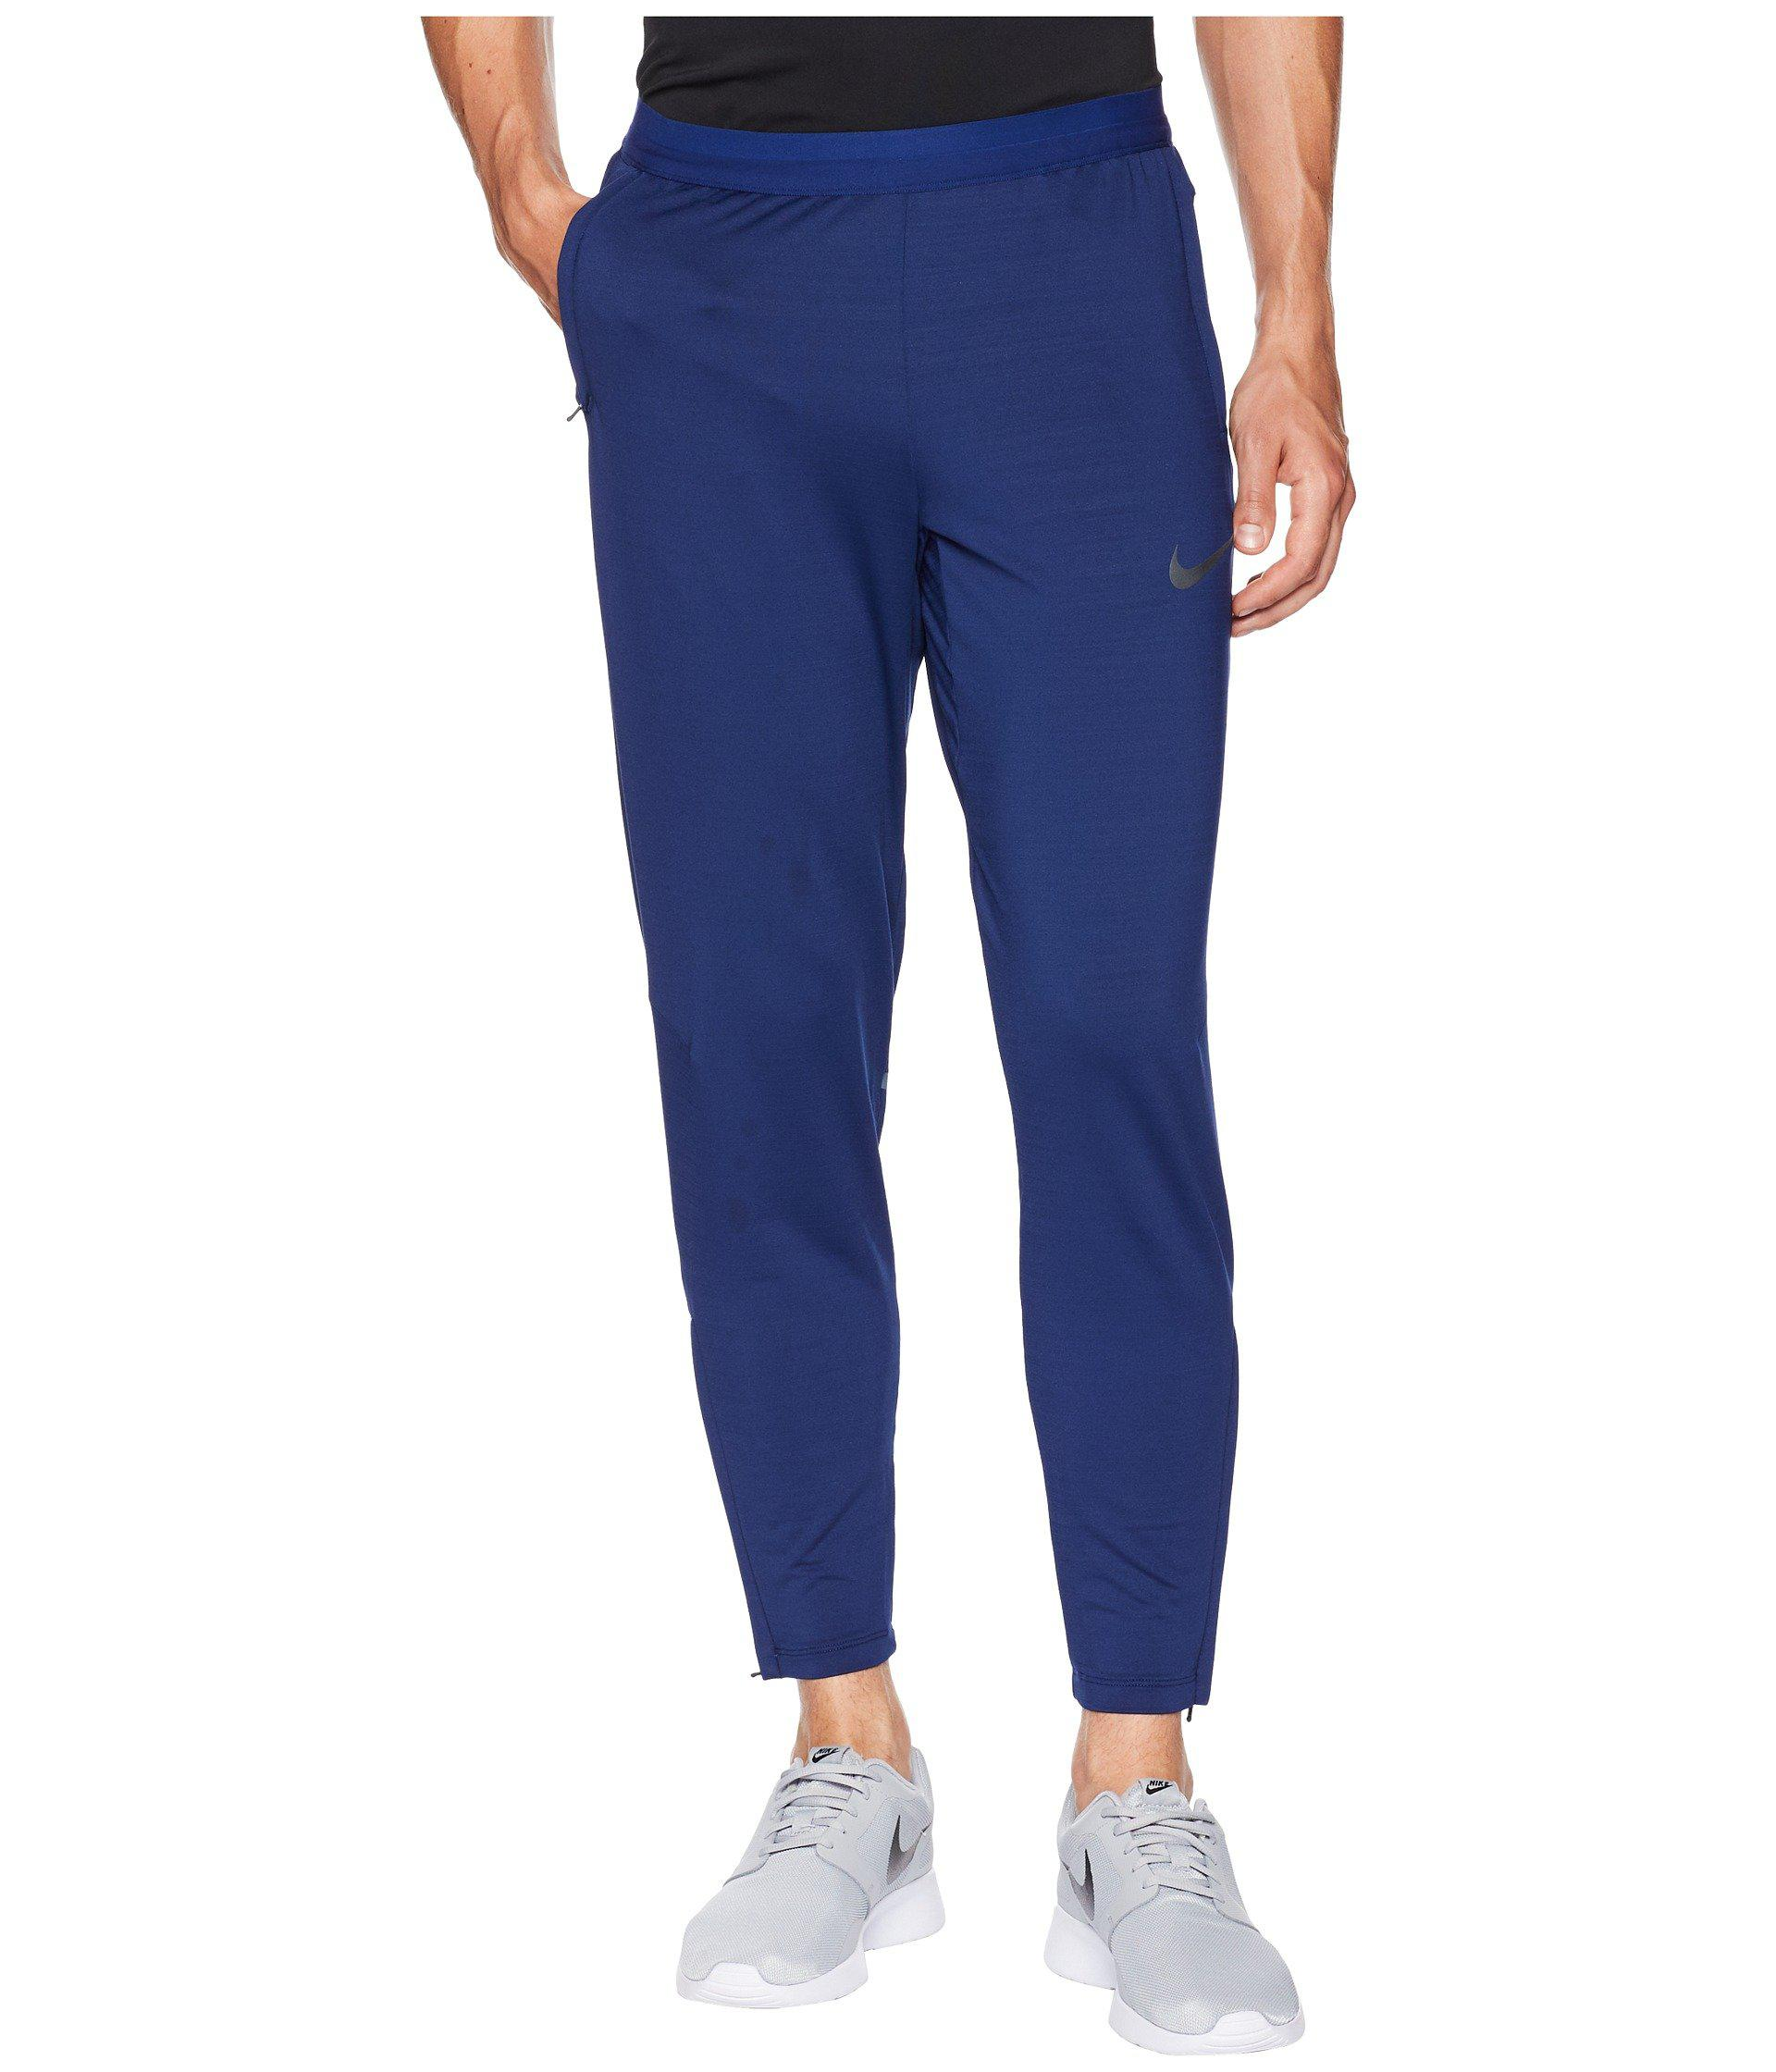 642f15622165 Lyst - Nike Phenom Pants (black) Men s Casual Pants in Blue for Men